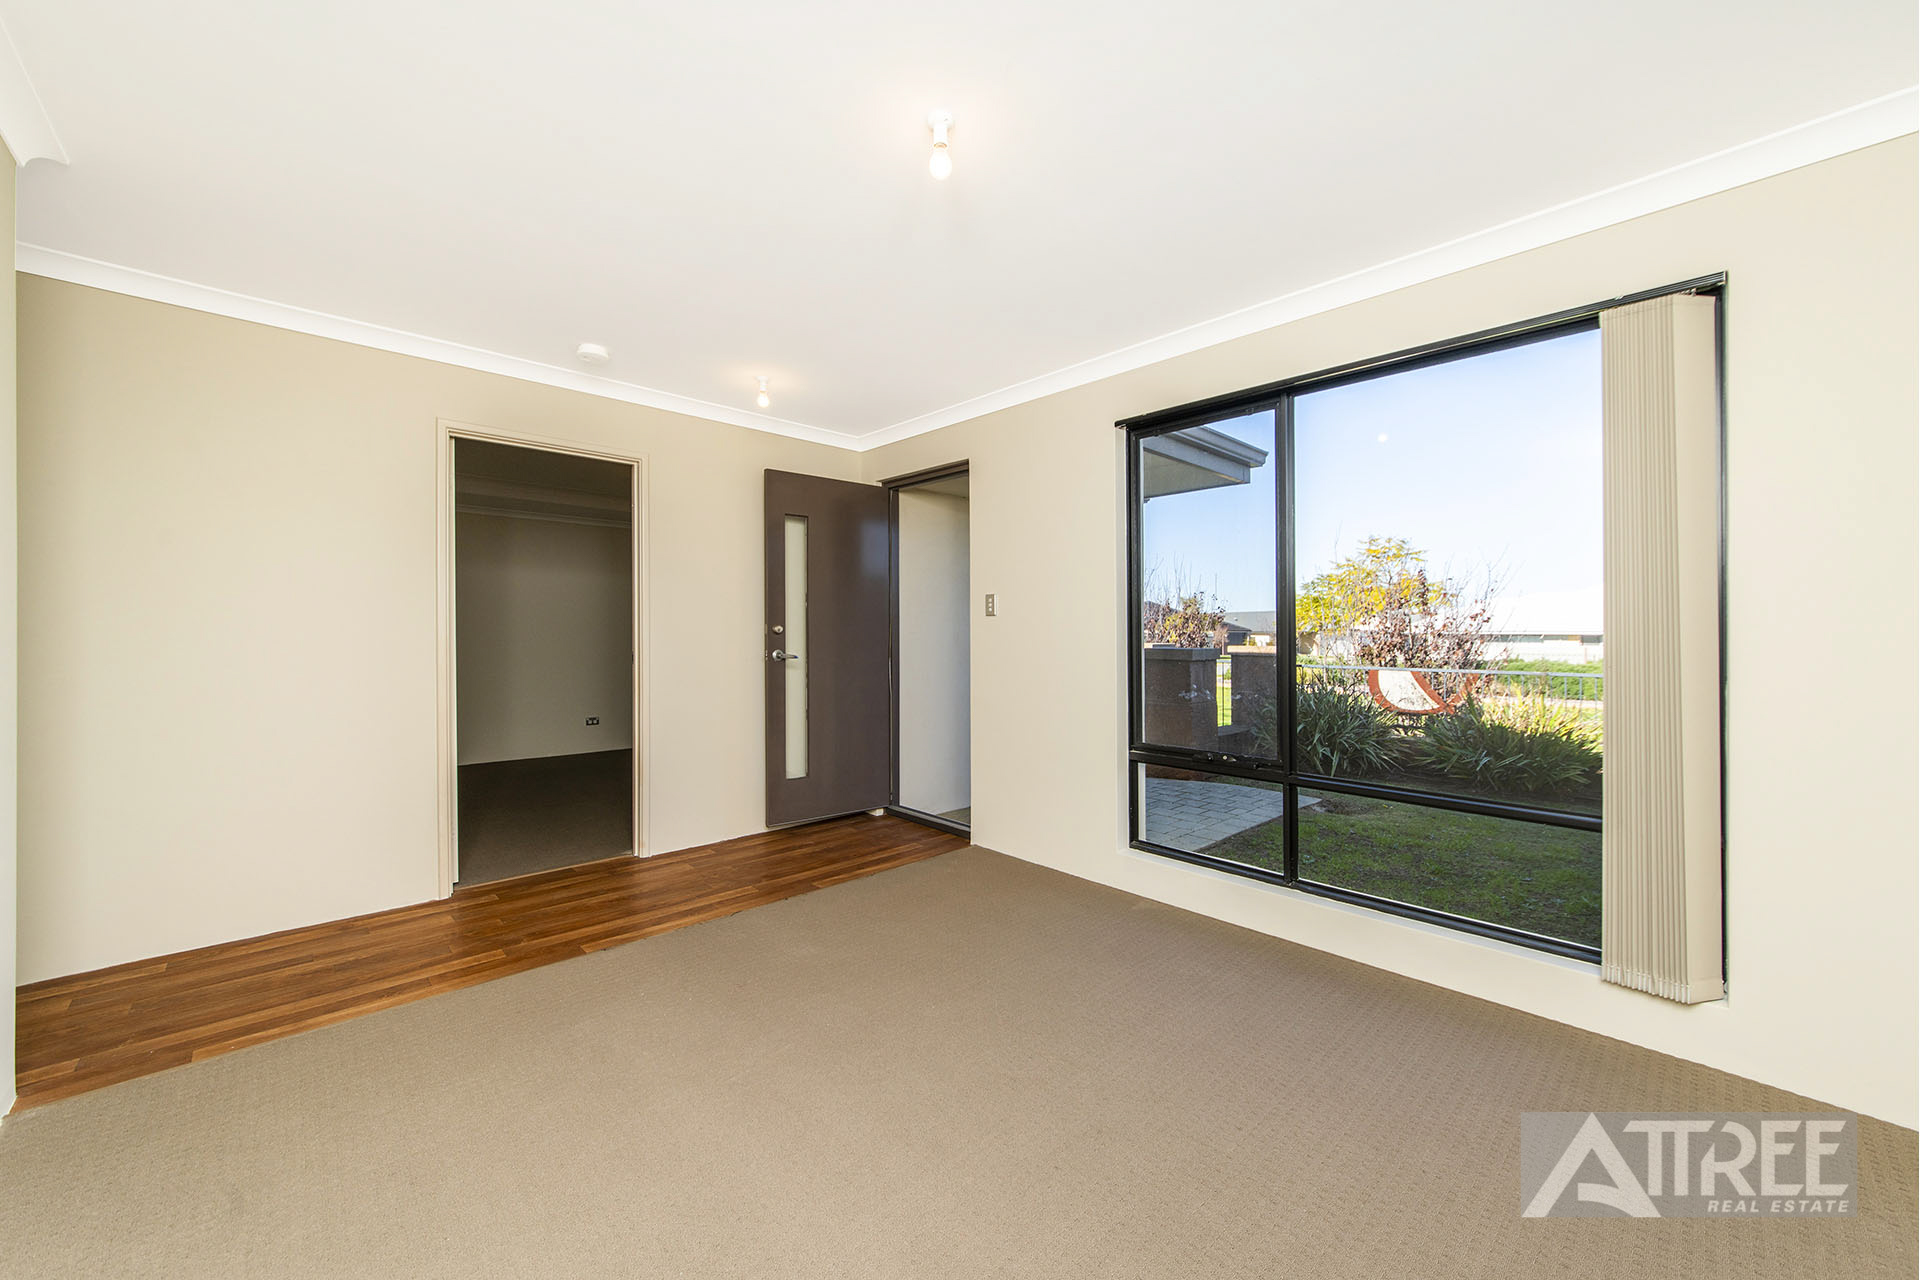 Property for sale in PIARA WATERS, 4 Keble Lane : Attree Real Estate